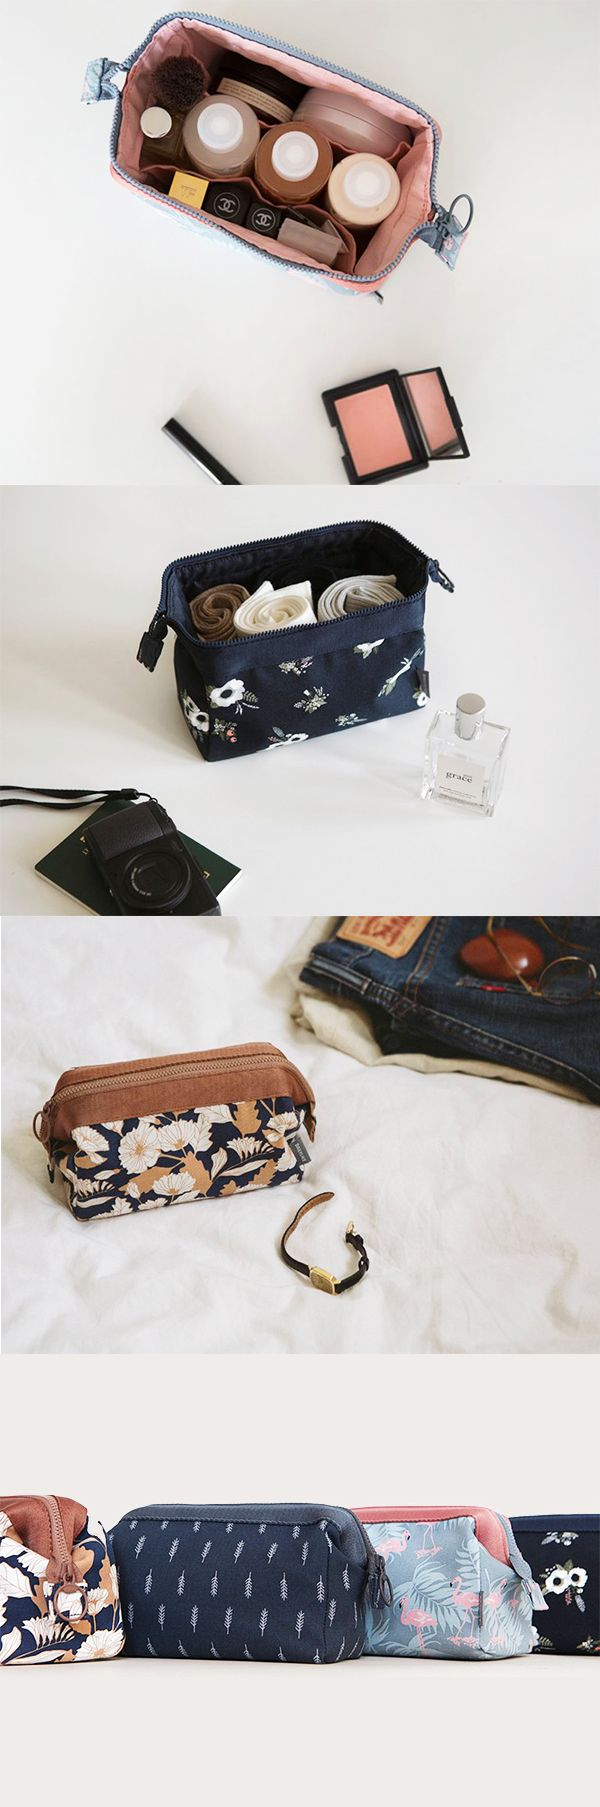 This pouch was made to be your travel buddy! The Dailylike Frame Pouch has a unique shape and design that allows it to securely hold more items. Place your travel sized (and some full sized) makeup, skincare, toiletries, and cosmetics in the main compartment. The rectangular shape and frame will keep all your items standing upright! The 2 extra pockets inside can hold lipsticks, cushion compacts, brushes, and more! To top it off, this pouch is water repellant and extra durable! Check it out…